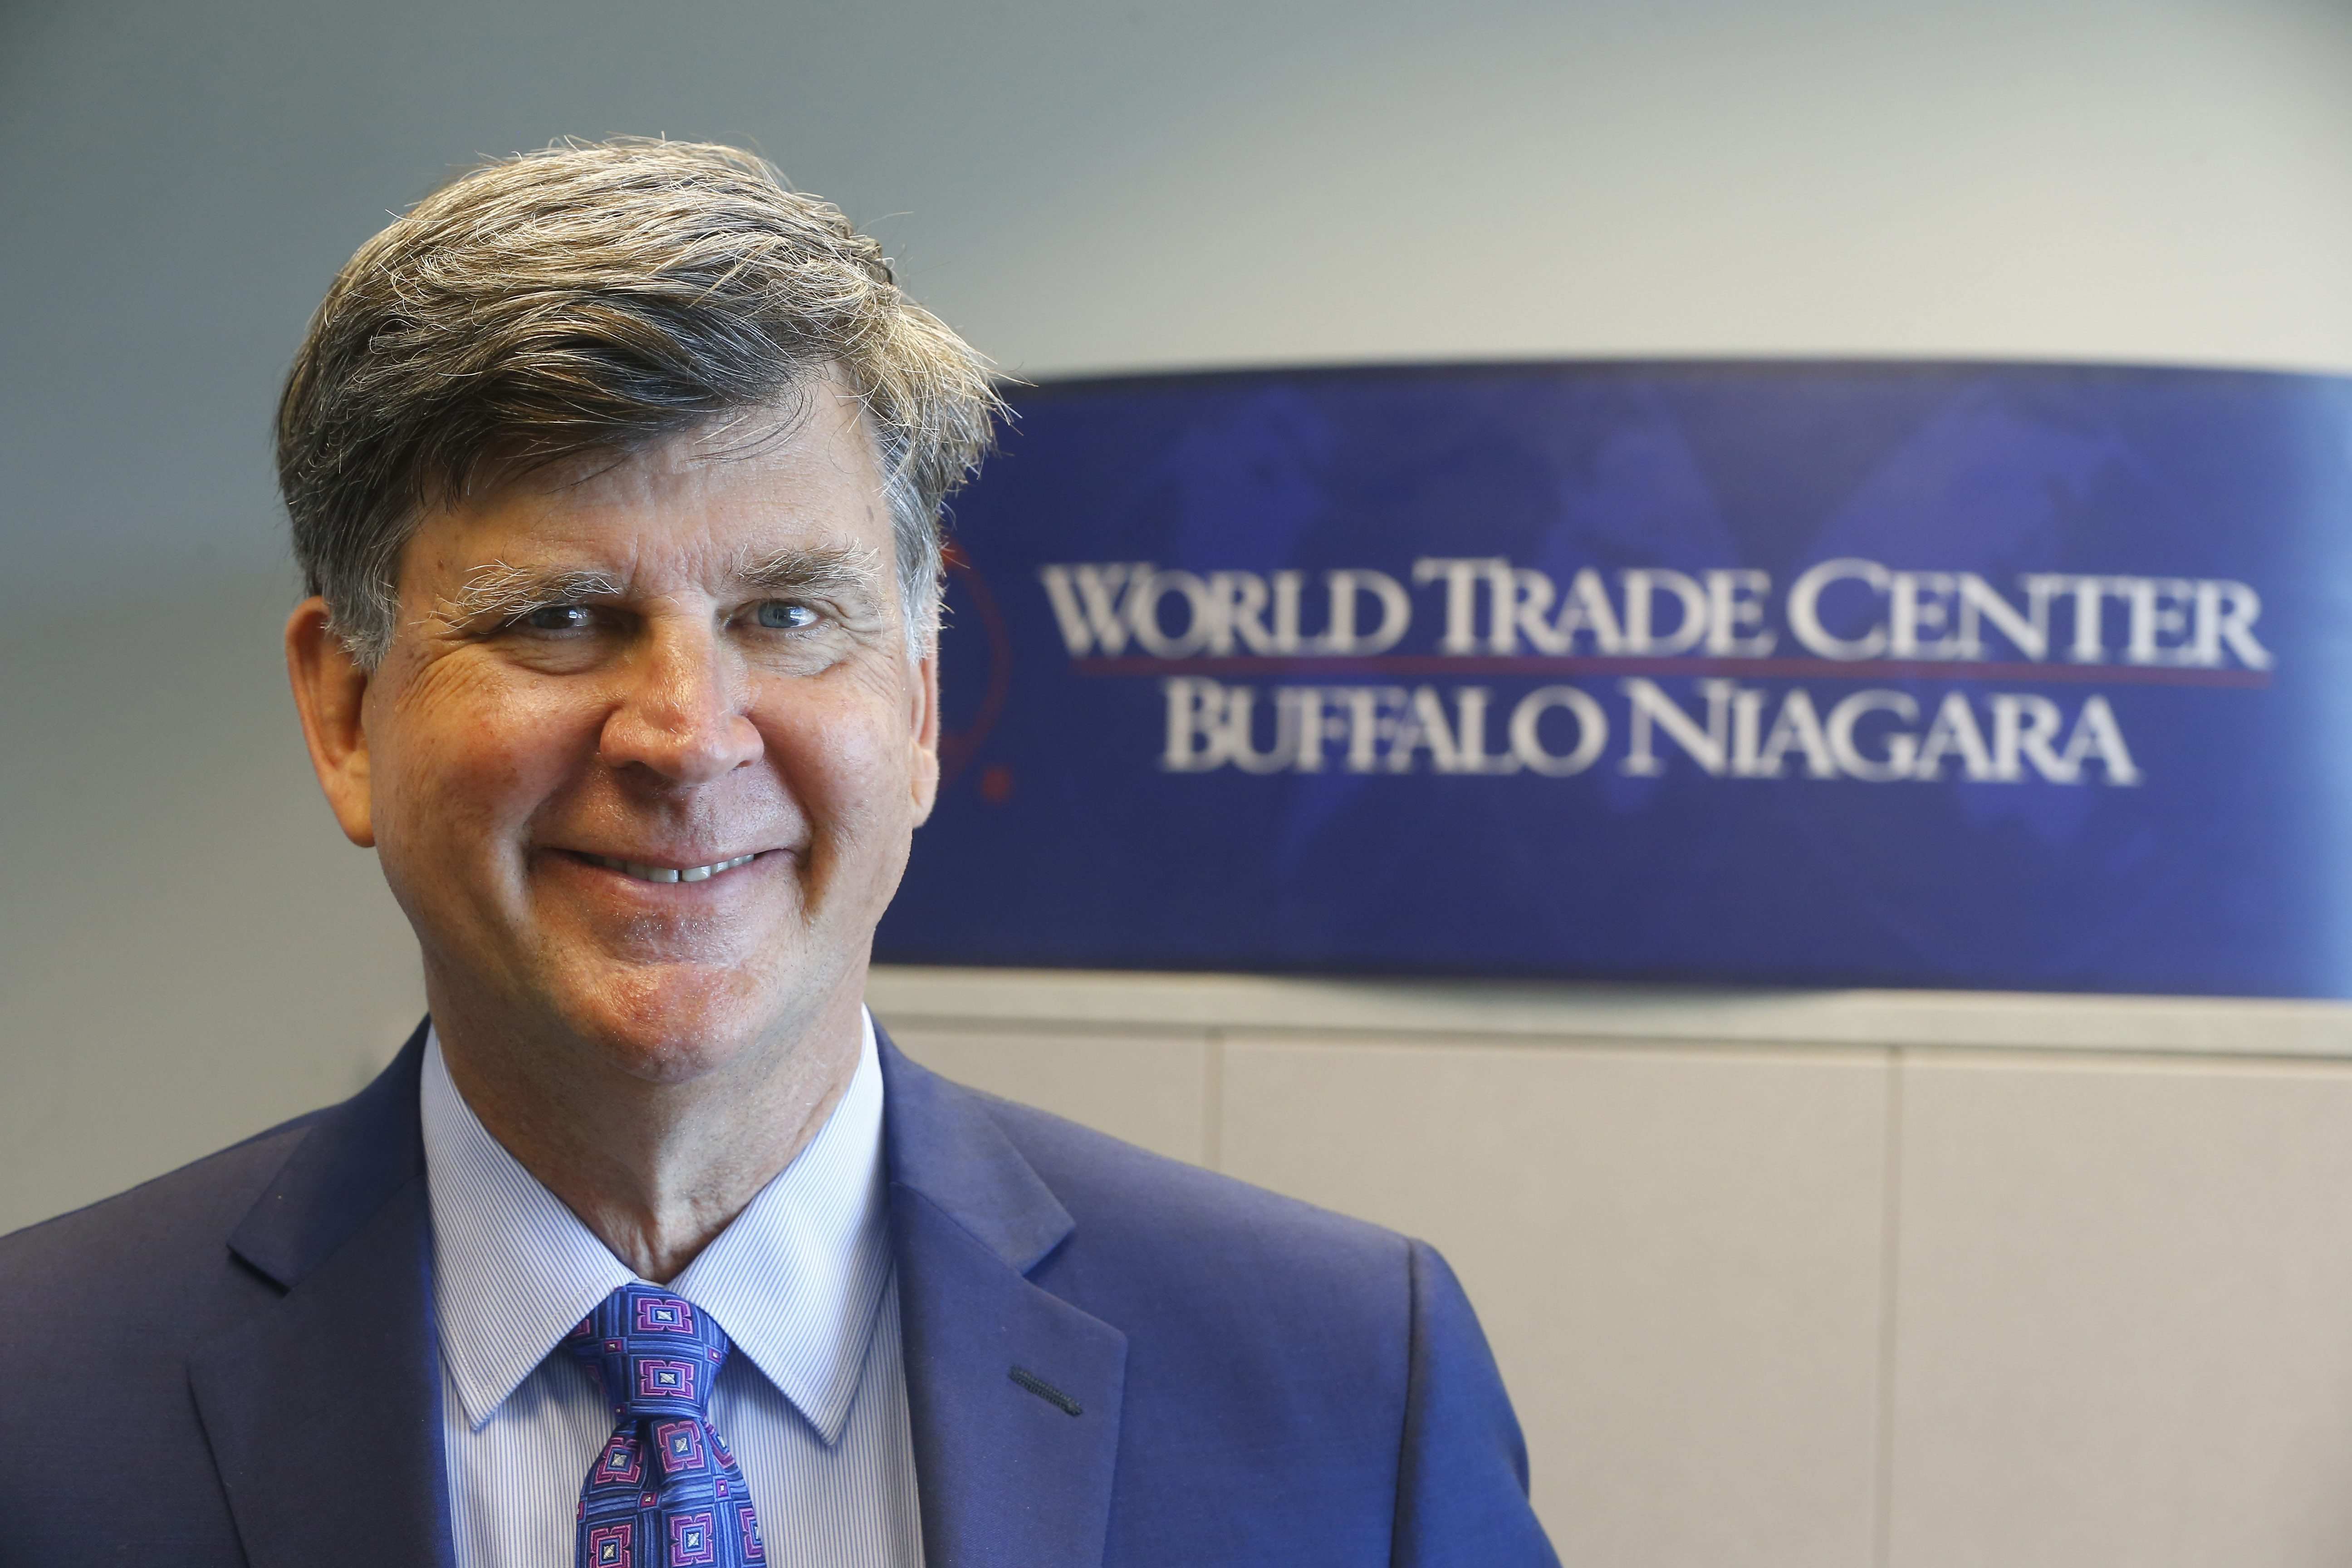 "William Lane, a former lobbyist for industrial giant Caterpillar Inc., spoke at a World Trade Center Buffalo Niagara event in Buffalo on Wednesday. The Virginia resident says it's time for American companies to stand up for trade deals.  ""To me, it's not just trade. It's about whether the U.S., and some of their allies, are going to turn inward or not.""   William Lane, former lobbyist for Caterpillar Inc."